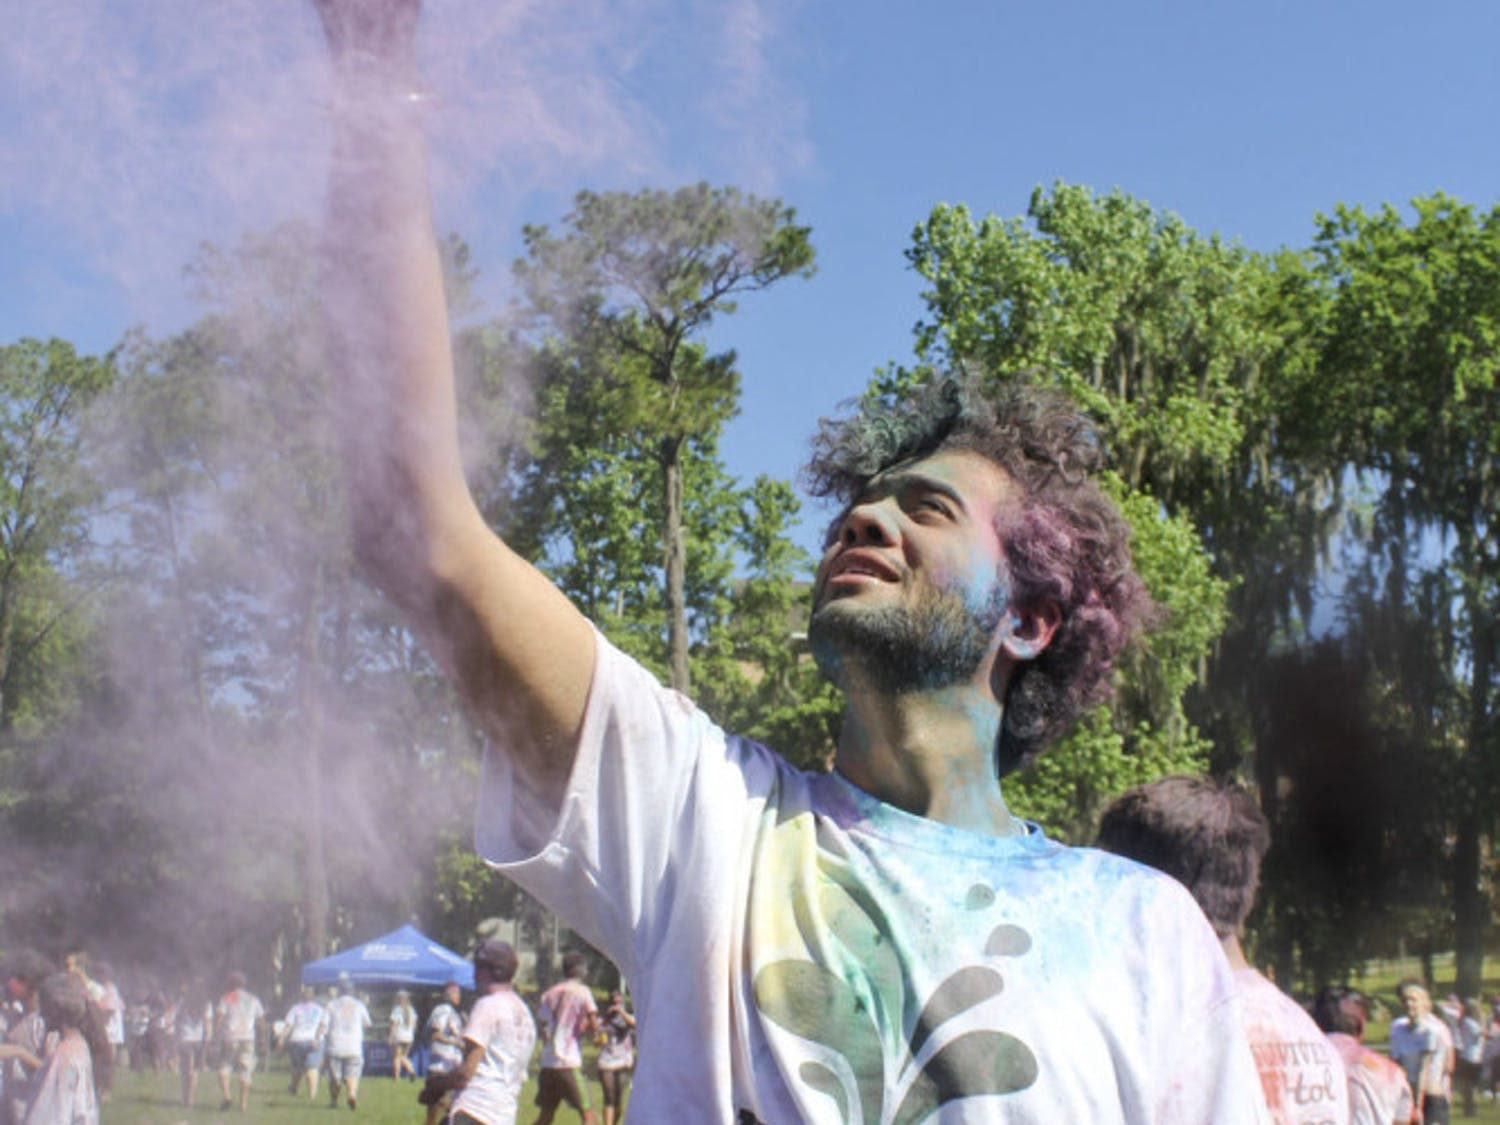 Deepanshu Soni, an information systems and operations management senior, flings colored powder in the air on Hume Field on Sunday. The 23-year-old threw the powder as part of UF Holi, a traditional Indian holiday that celebrates the coming of spring.